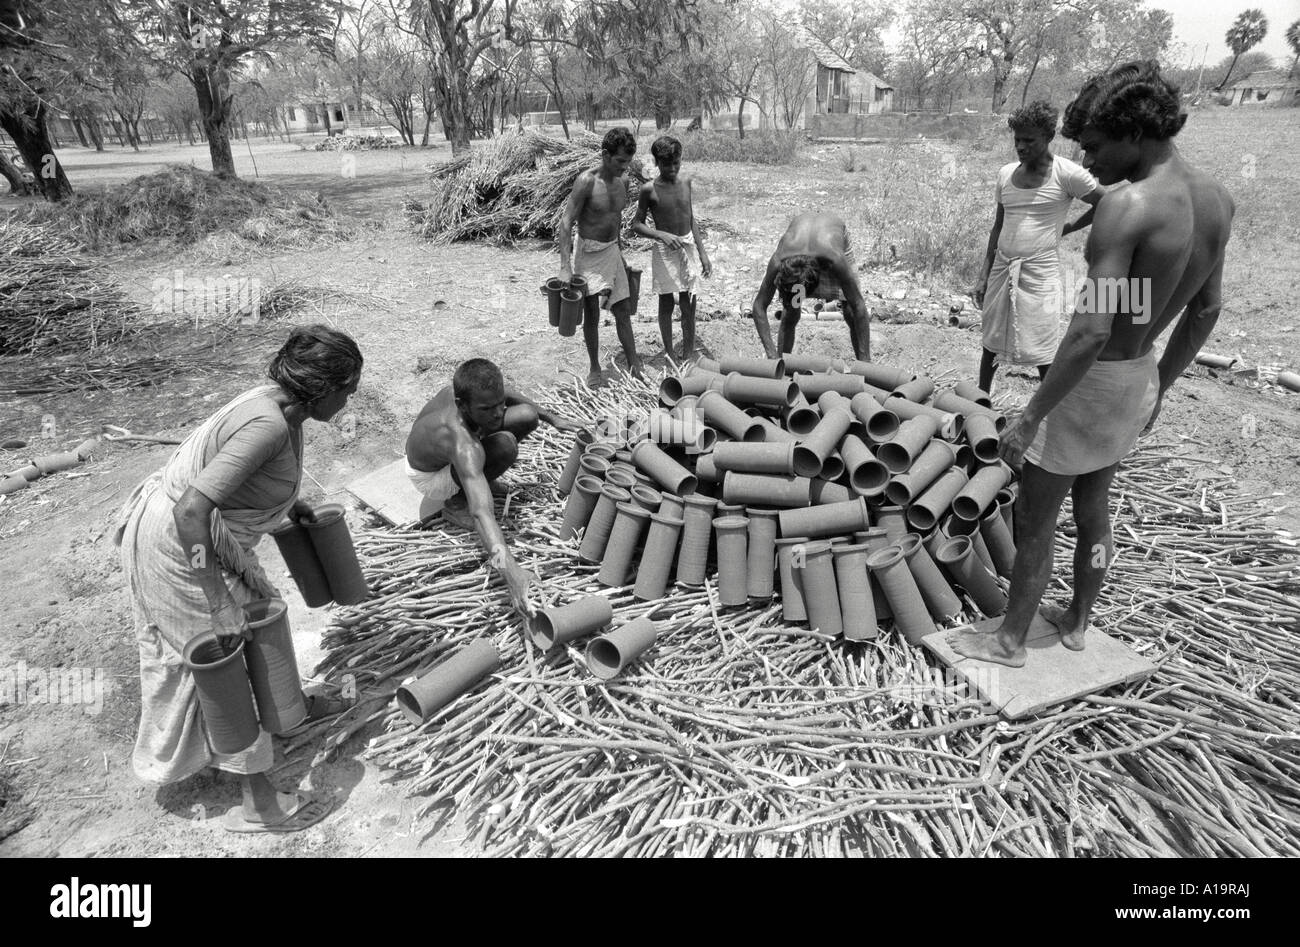 Pottery workers loading a kiln. India - Stock Image